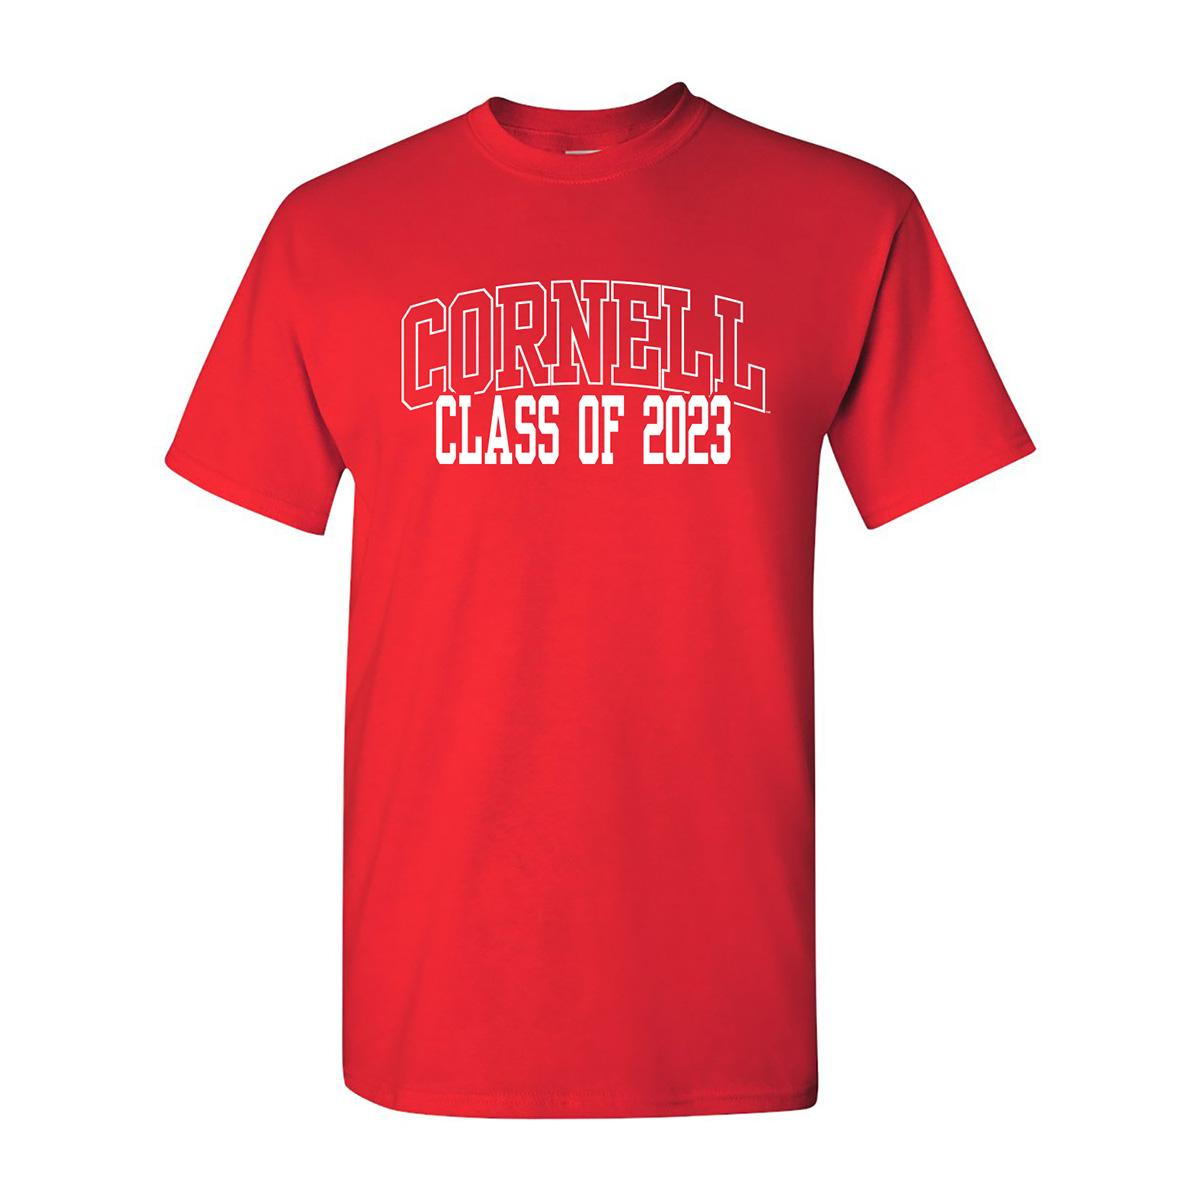 Cornell Class Of 2023 Tee Red